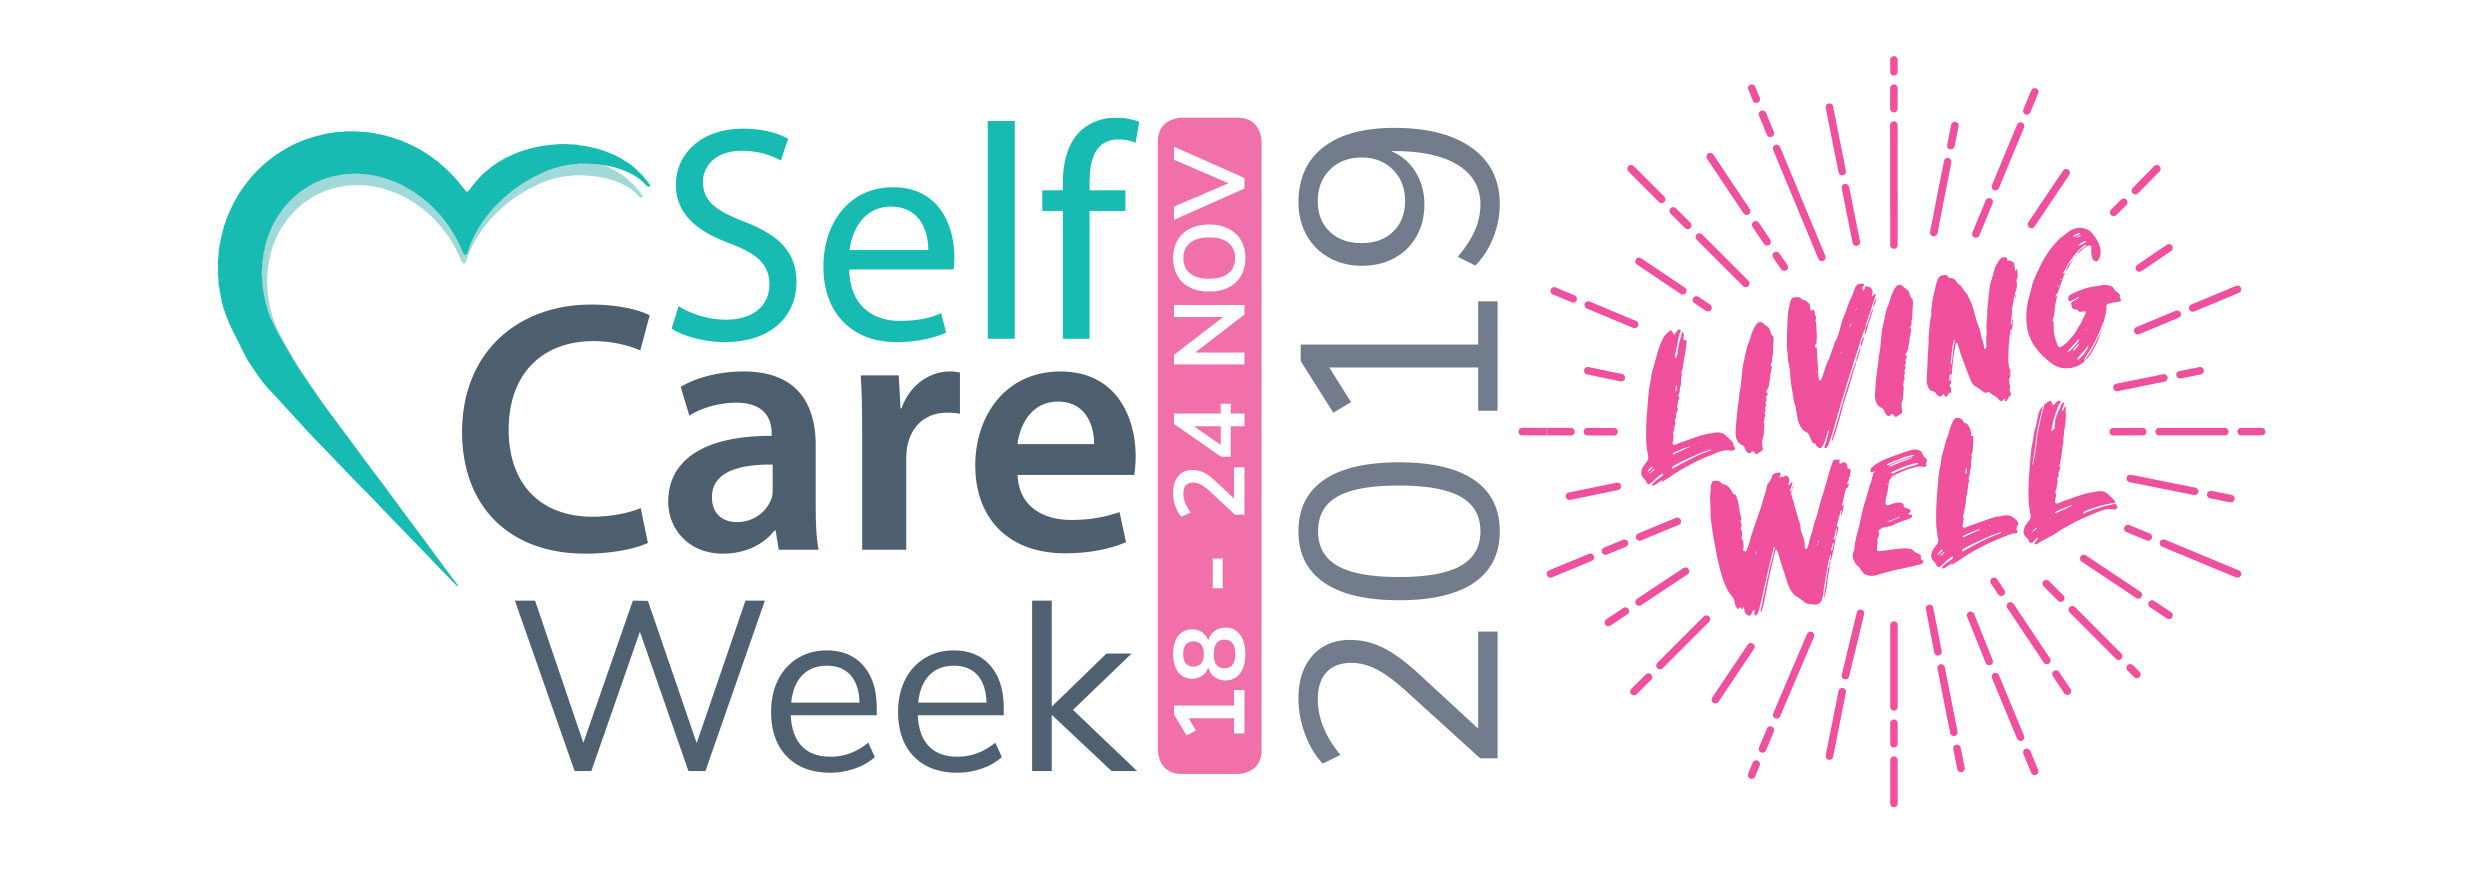 Self Care Week 2019 Social Media Messages